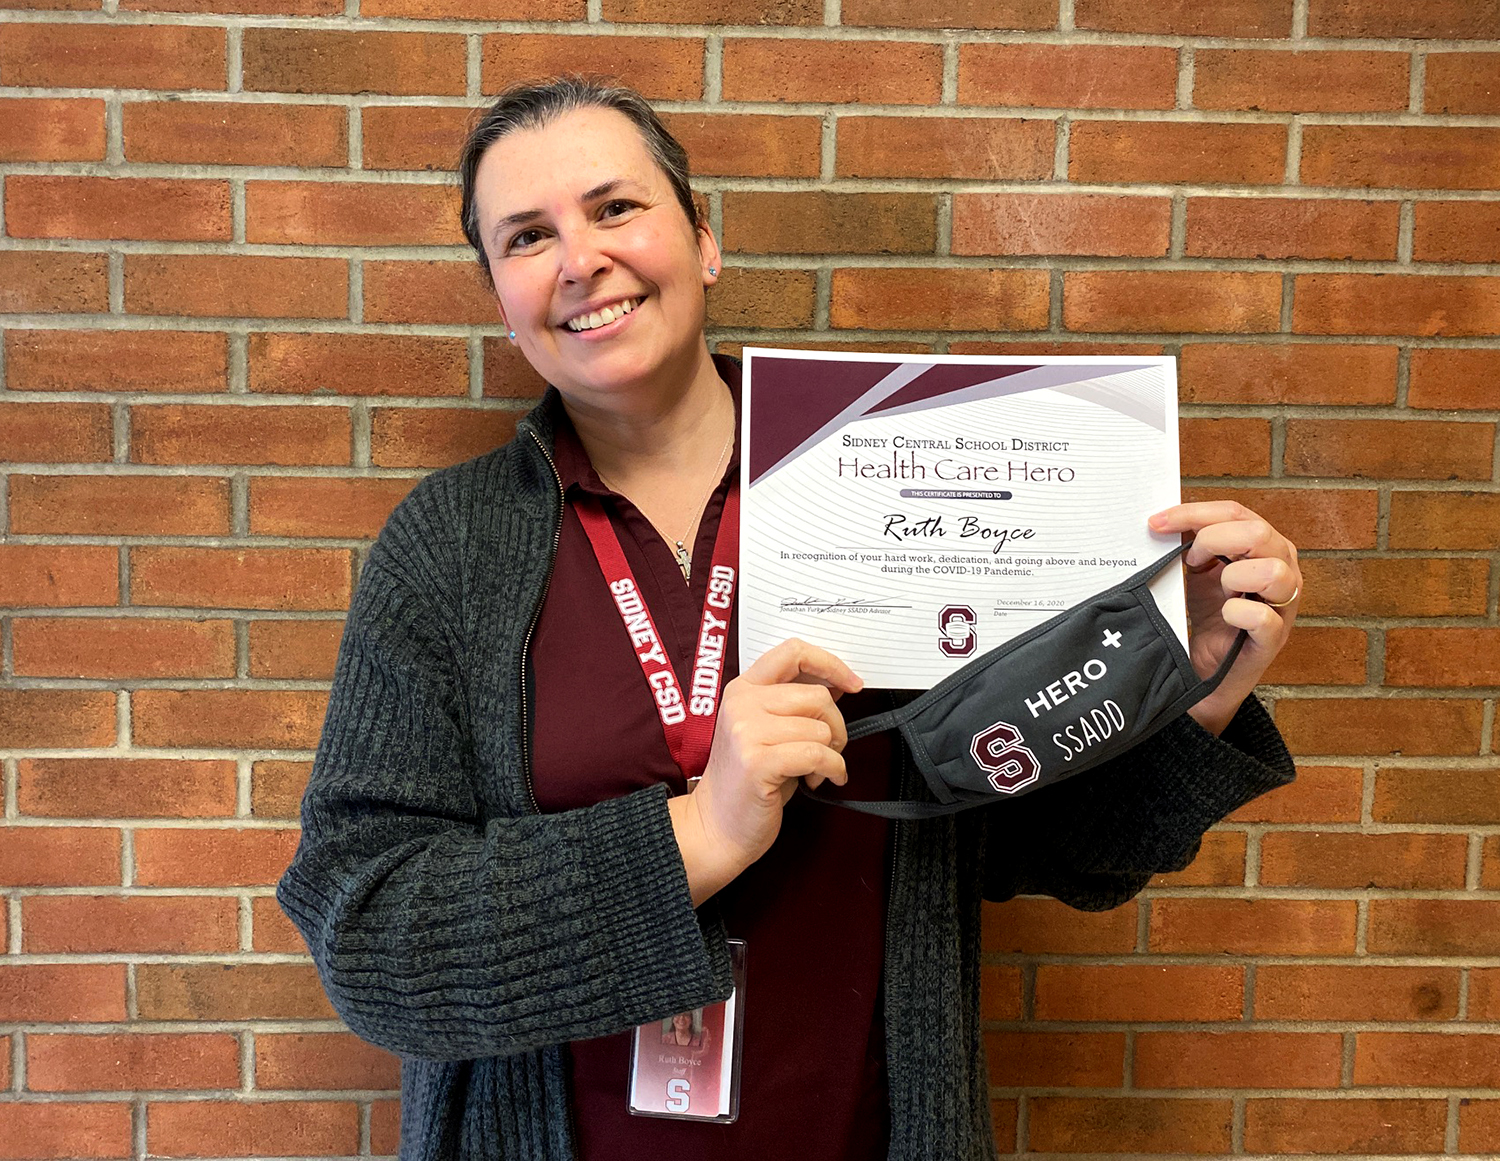 Ruth Boyce with certificate